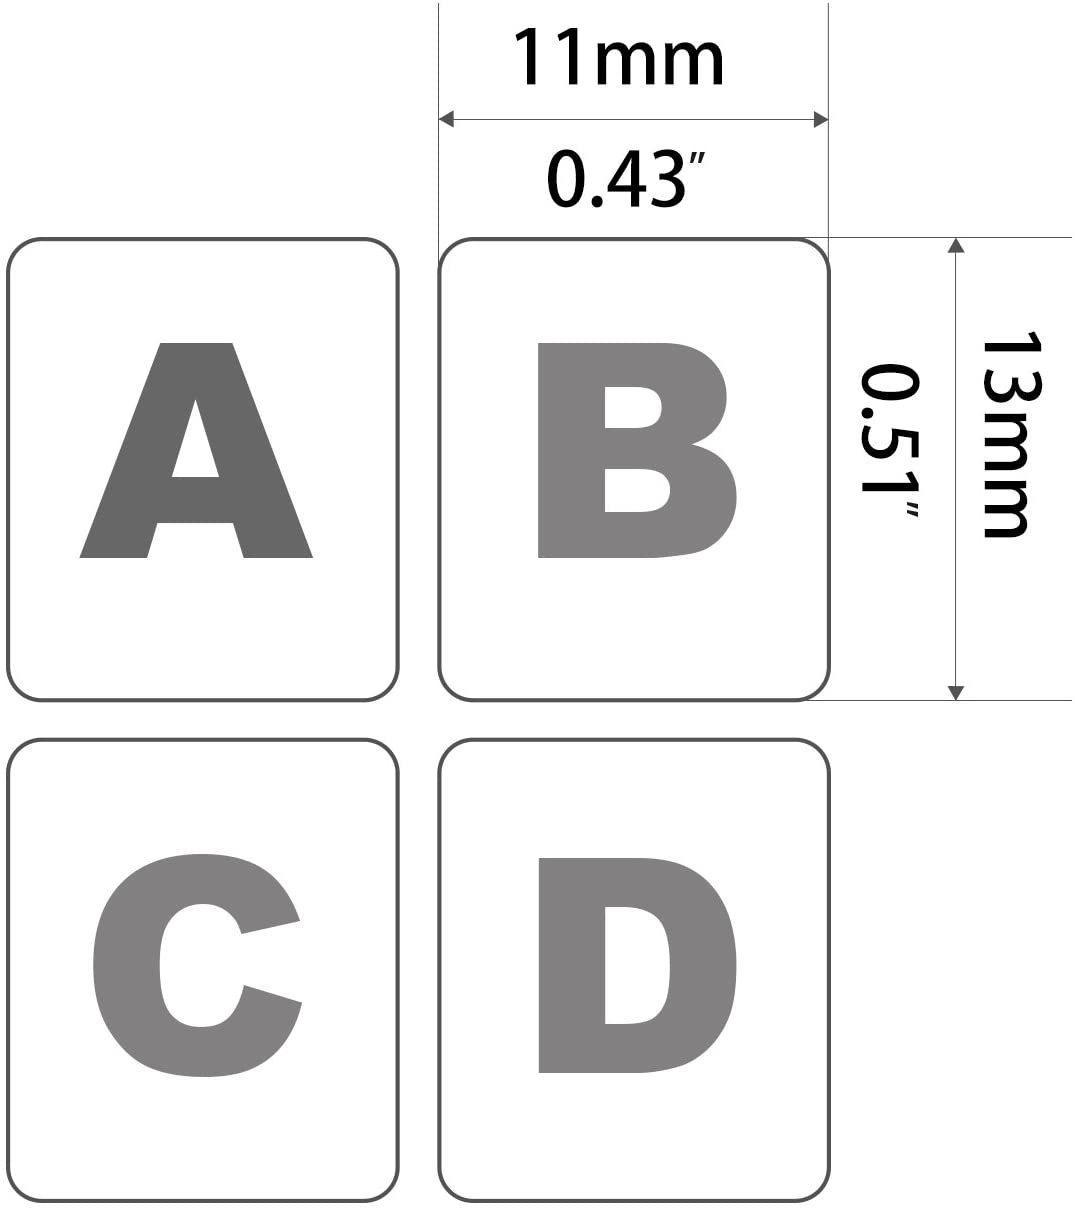 """FORITO Russian Keyboard Stickers 0.51/"""" Keyboard Replacement Sticker Black Background with Orange Lettering for Computer Keyboard Each Unit Size: Width 0.43/"""" x 2PCS Pack Height Matte"""